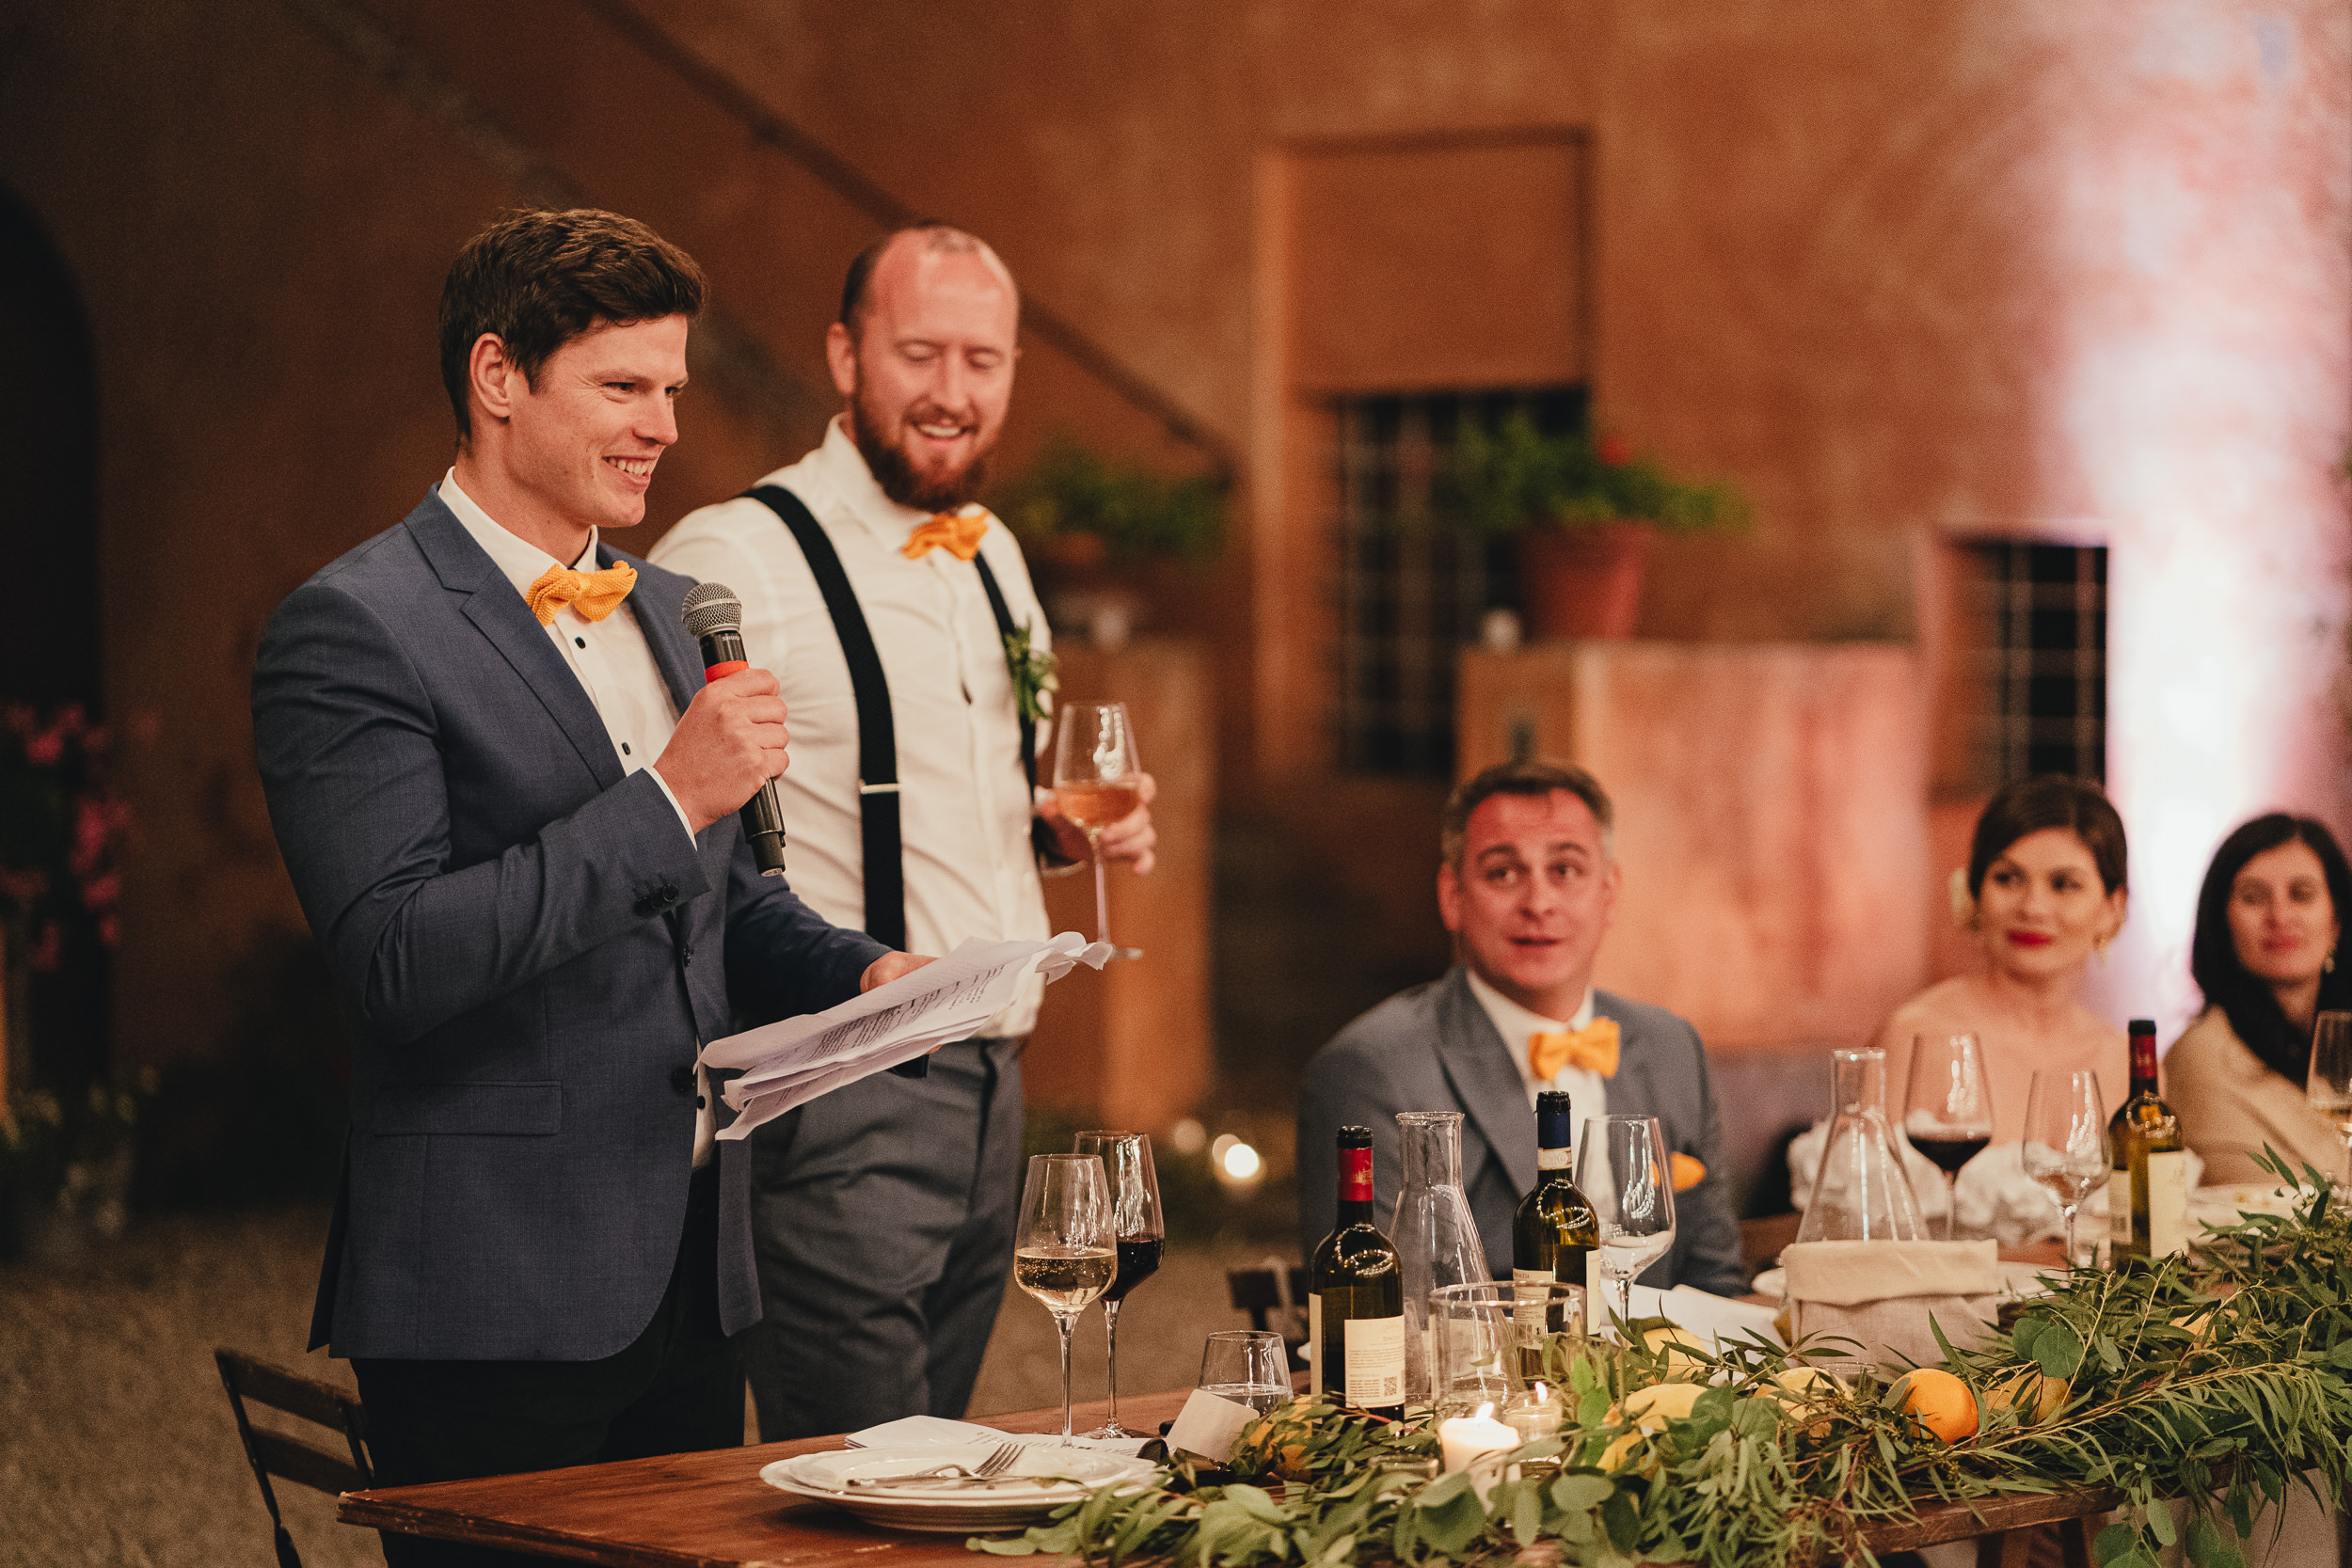 Tuscan Villa Wedding - The Best Men give their speech